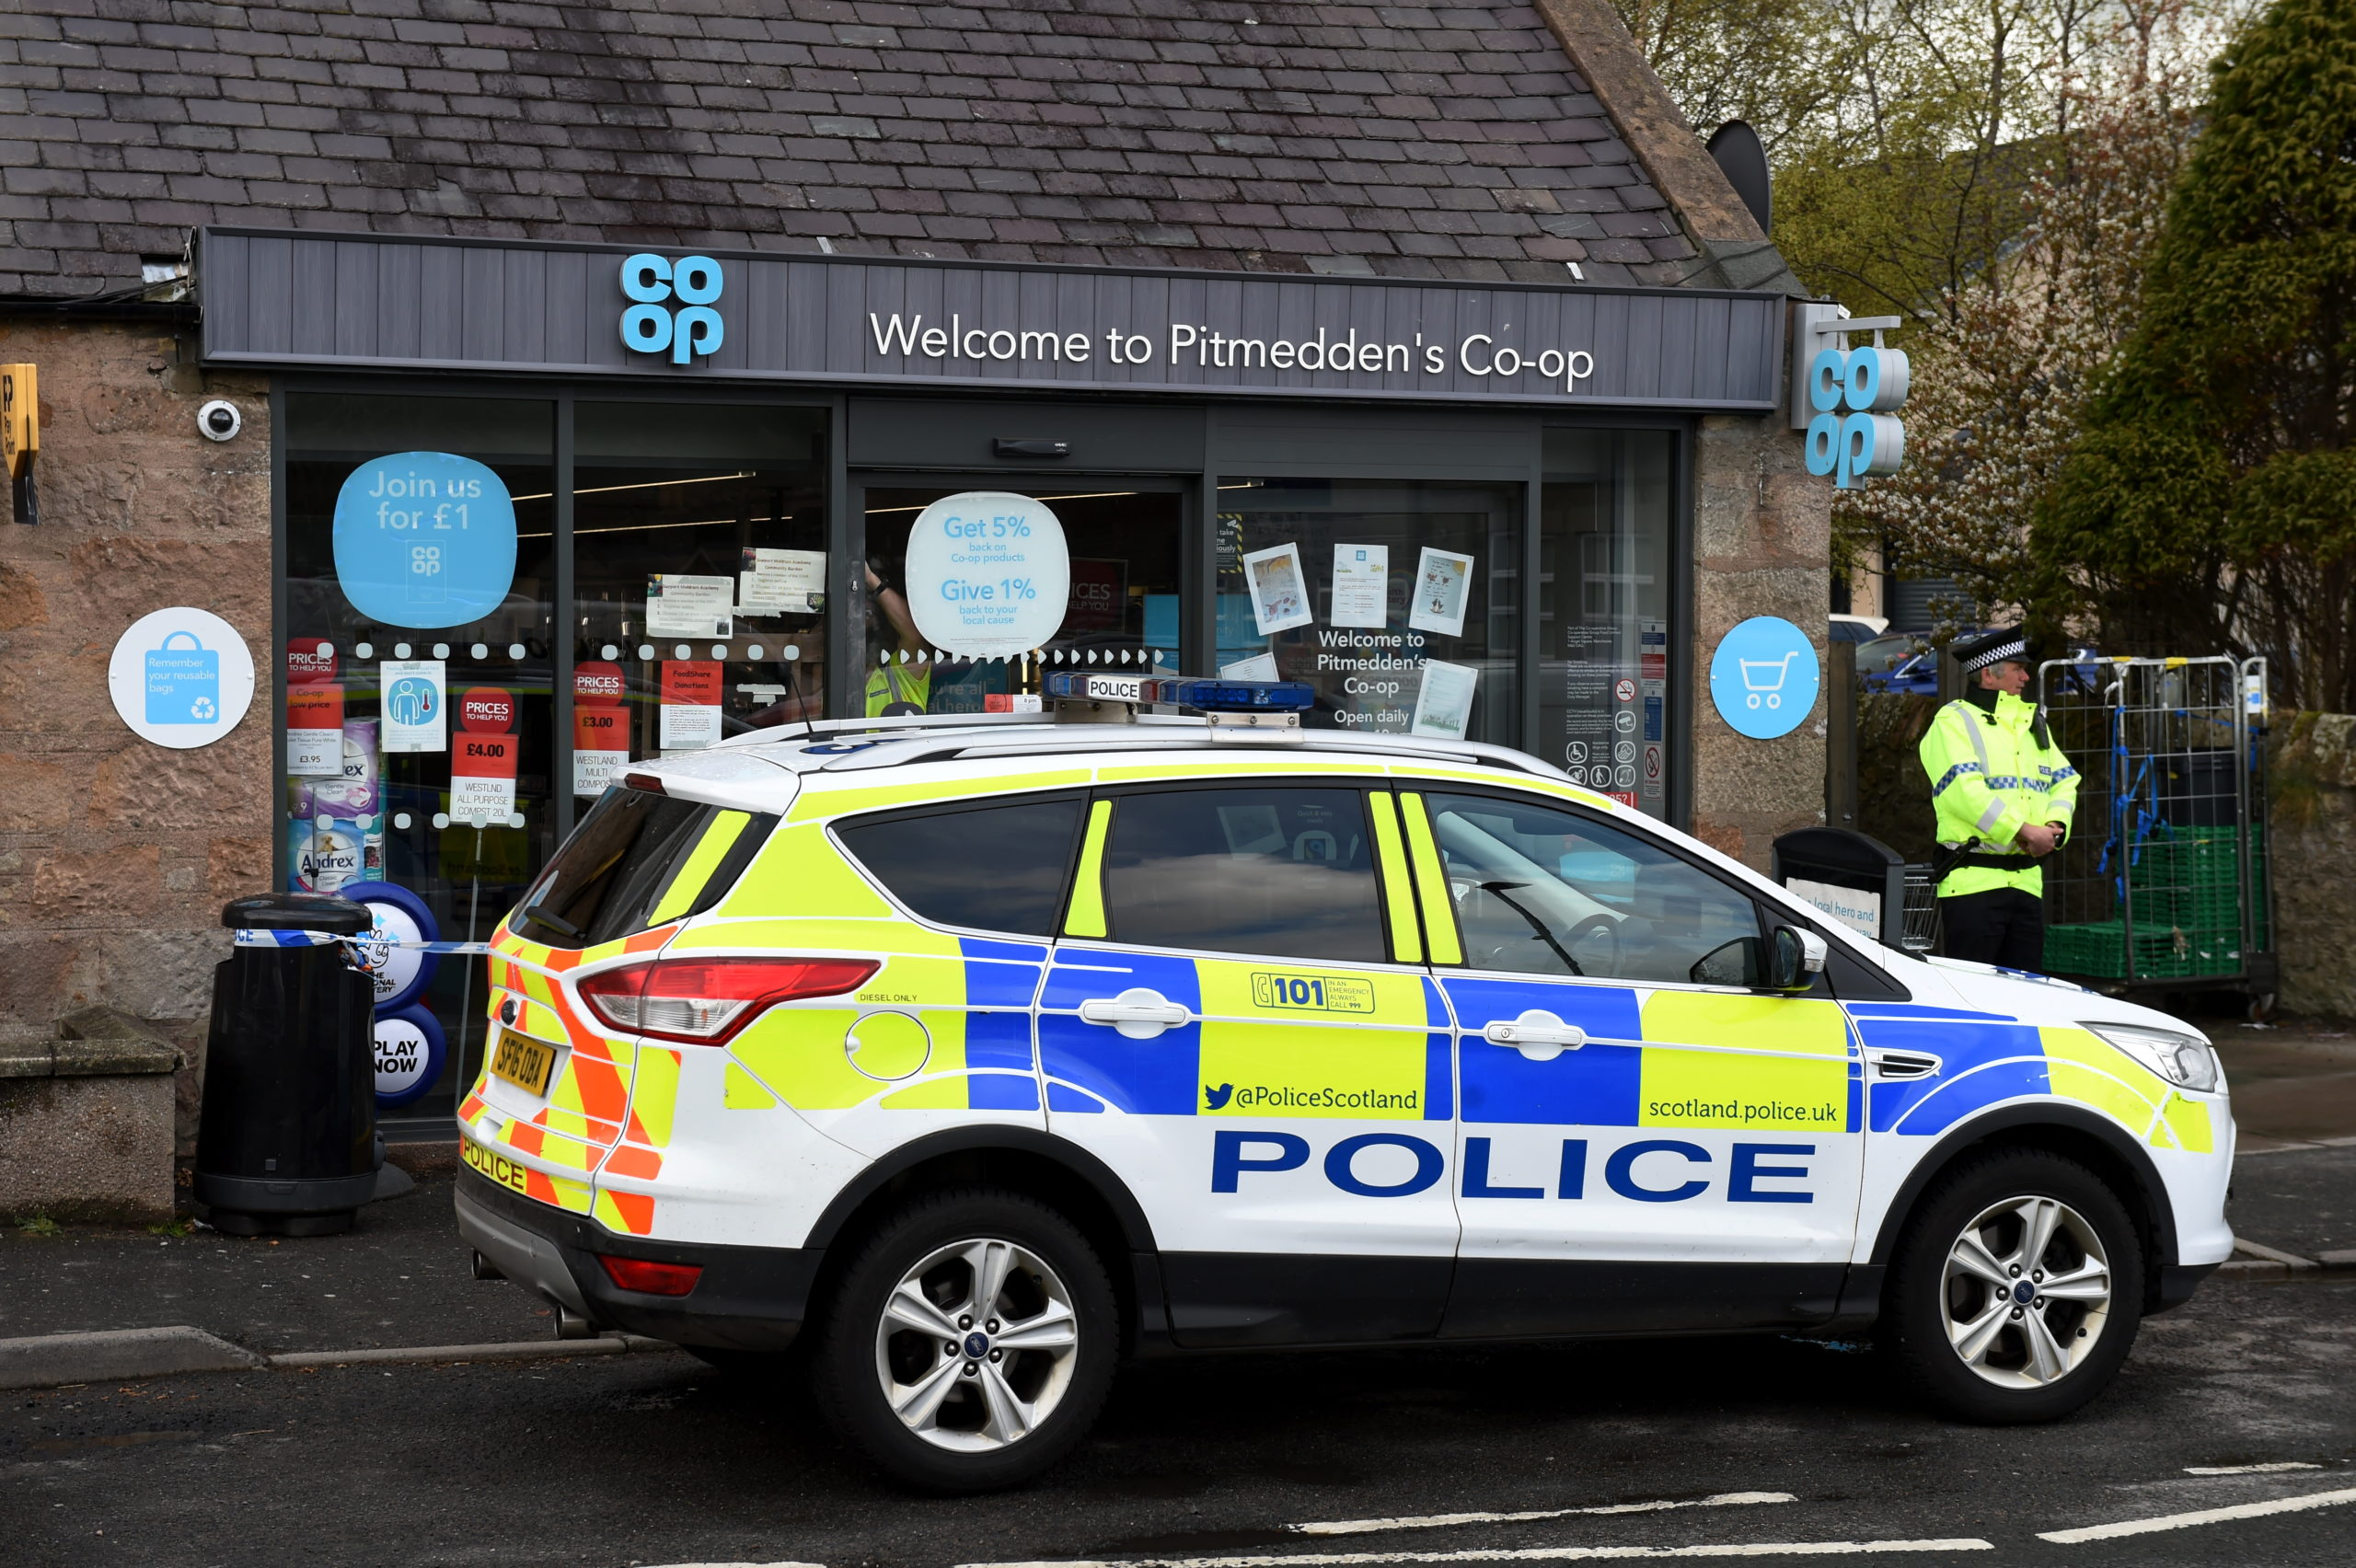 Police Scotland are appealing for information after a Co-op in Pitmedden was broken into.